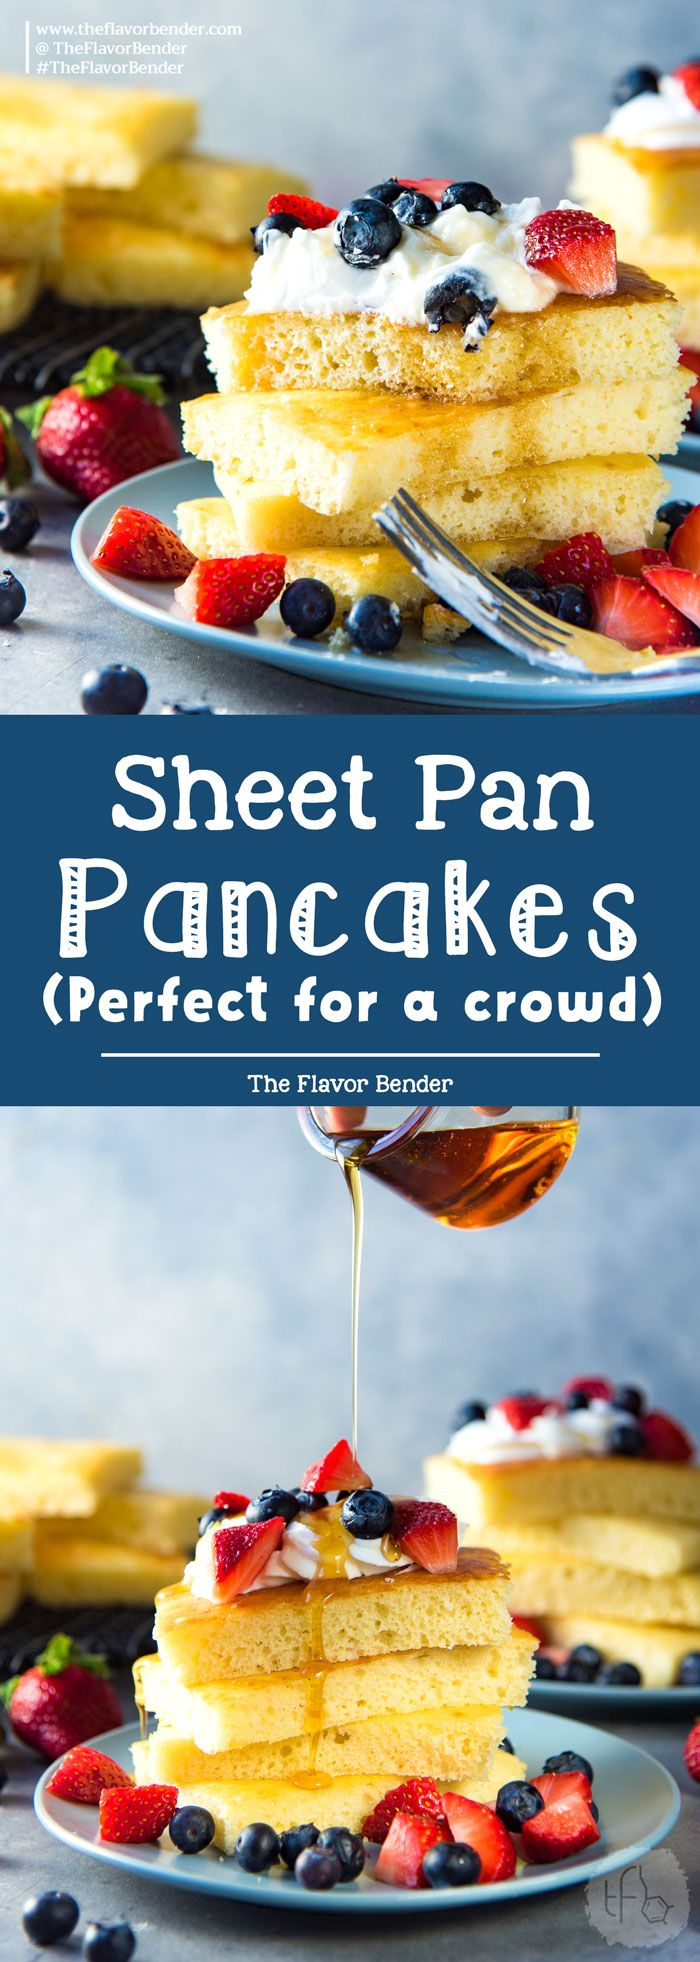 Sheet pan pancakes - Soft light and fluffy oven baked pancakes for breakfast or brunch. Perfect for a crowd, and easy to make. via @theflavorbender